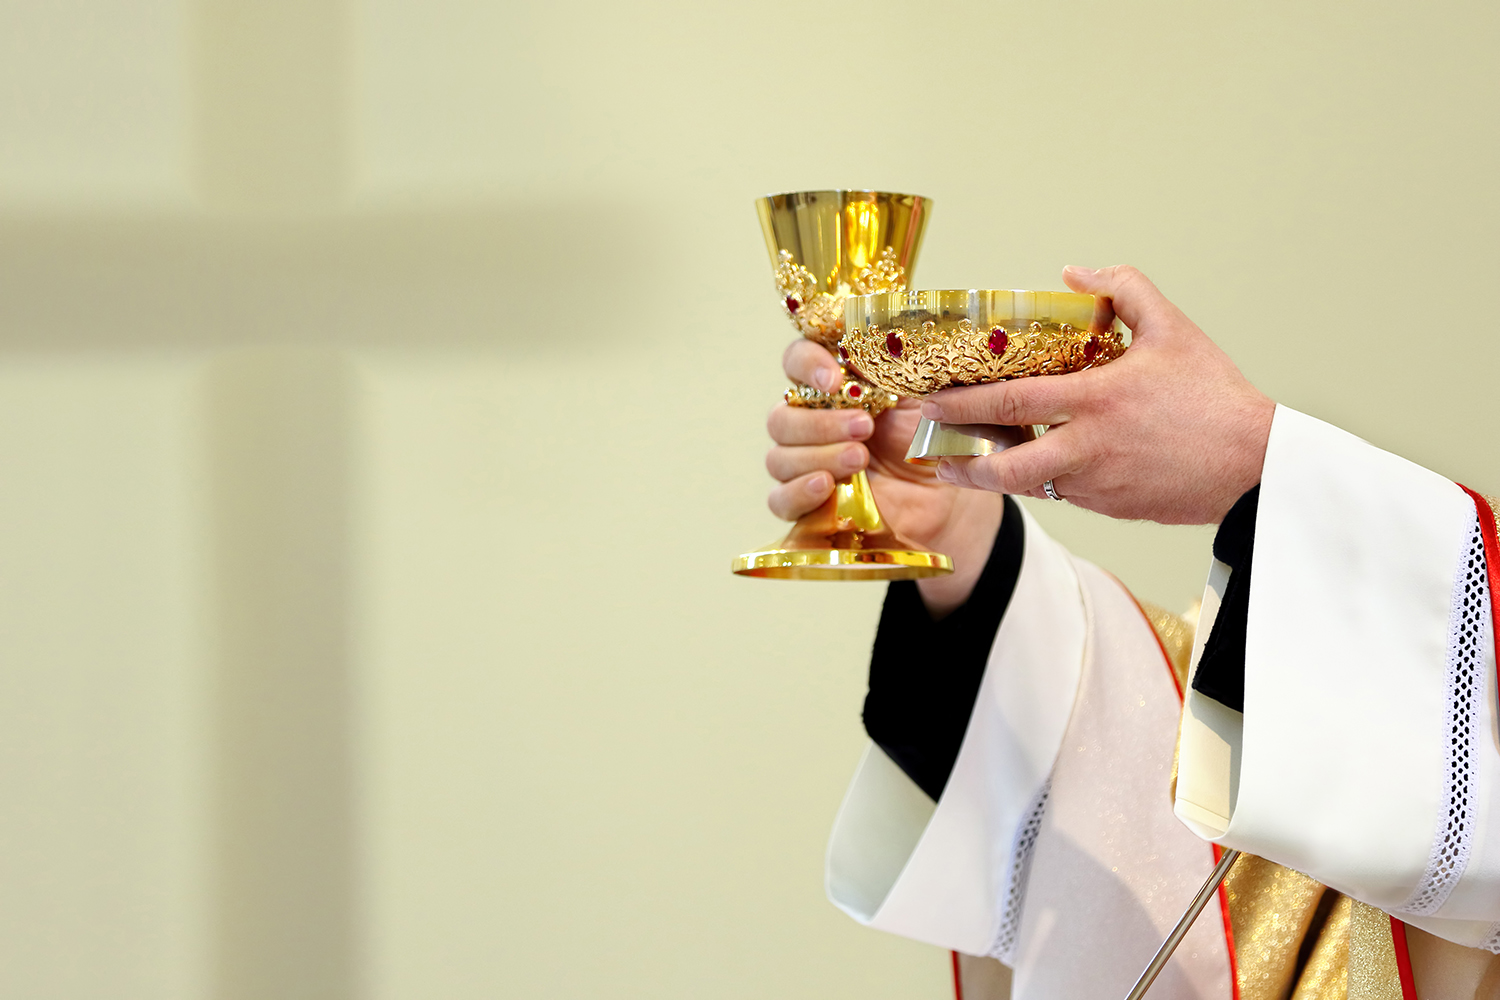 Teaching the realities of the Eucharist